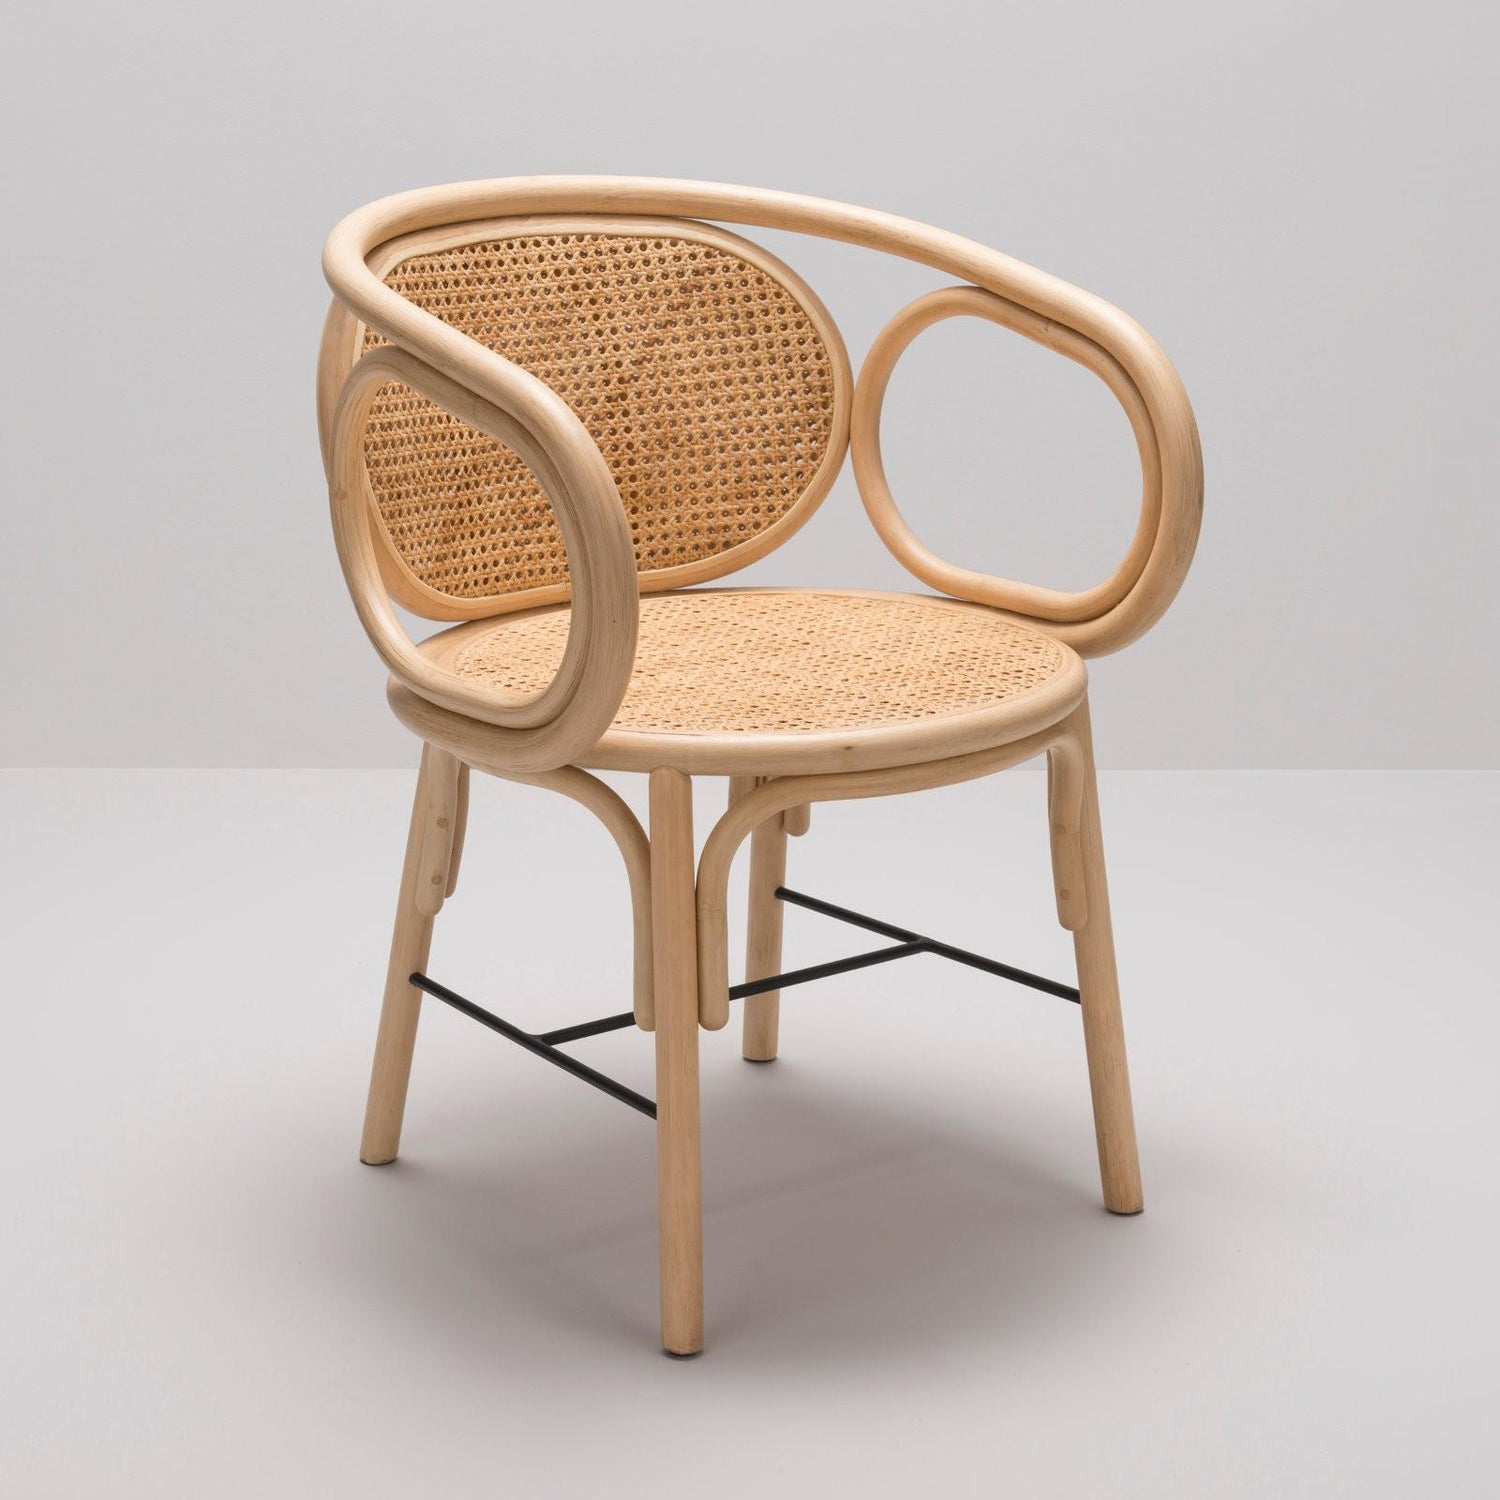 Modern Design Fauteuil.Rattan And Woven Cane Armchair French Modern Design For Sale At